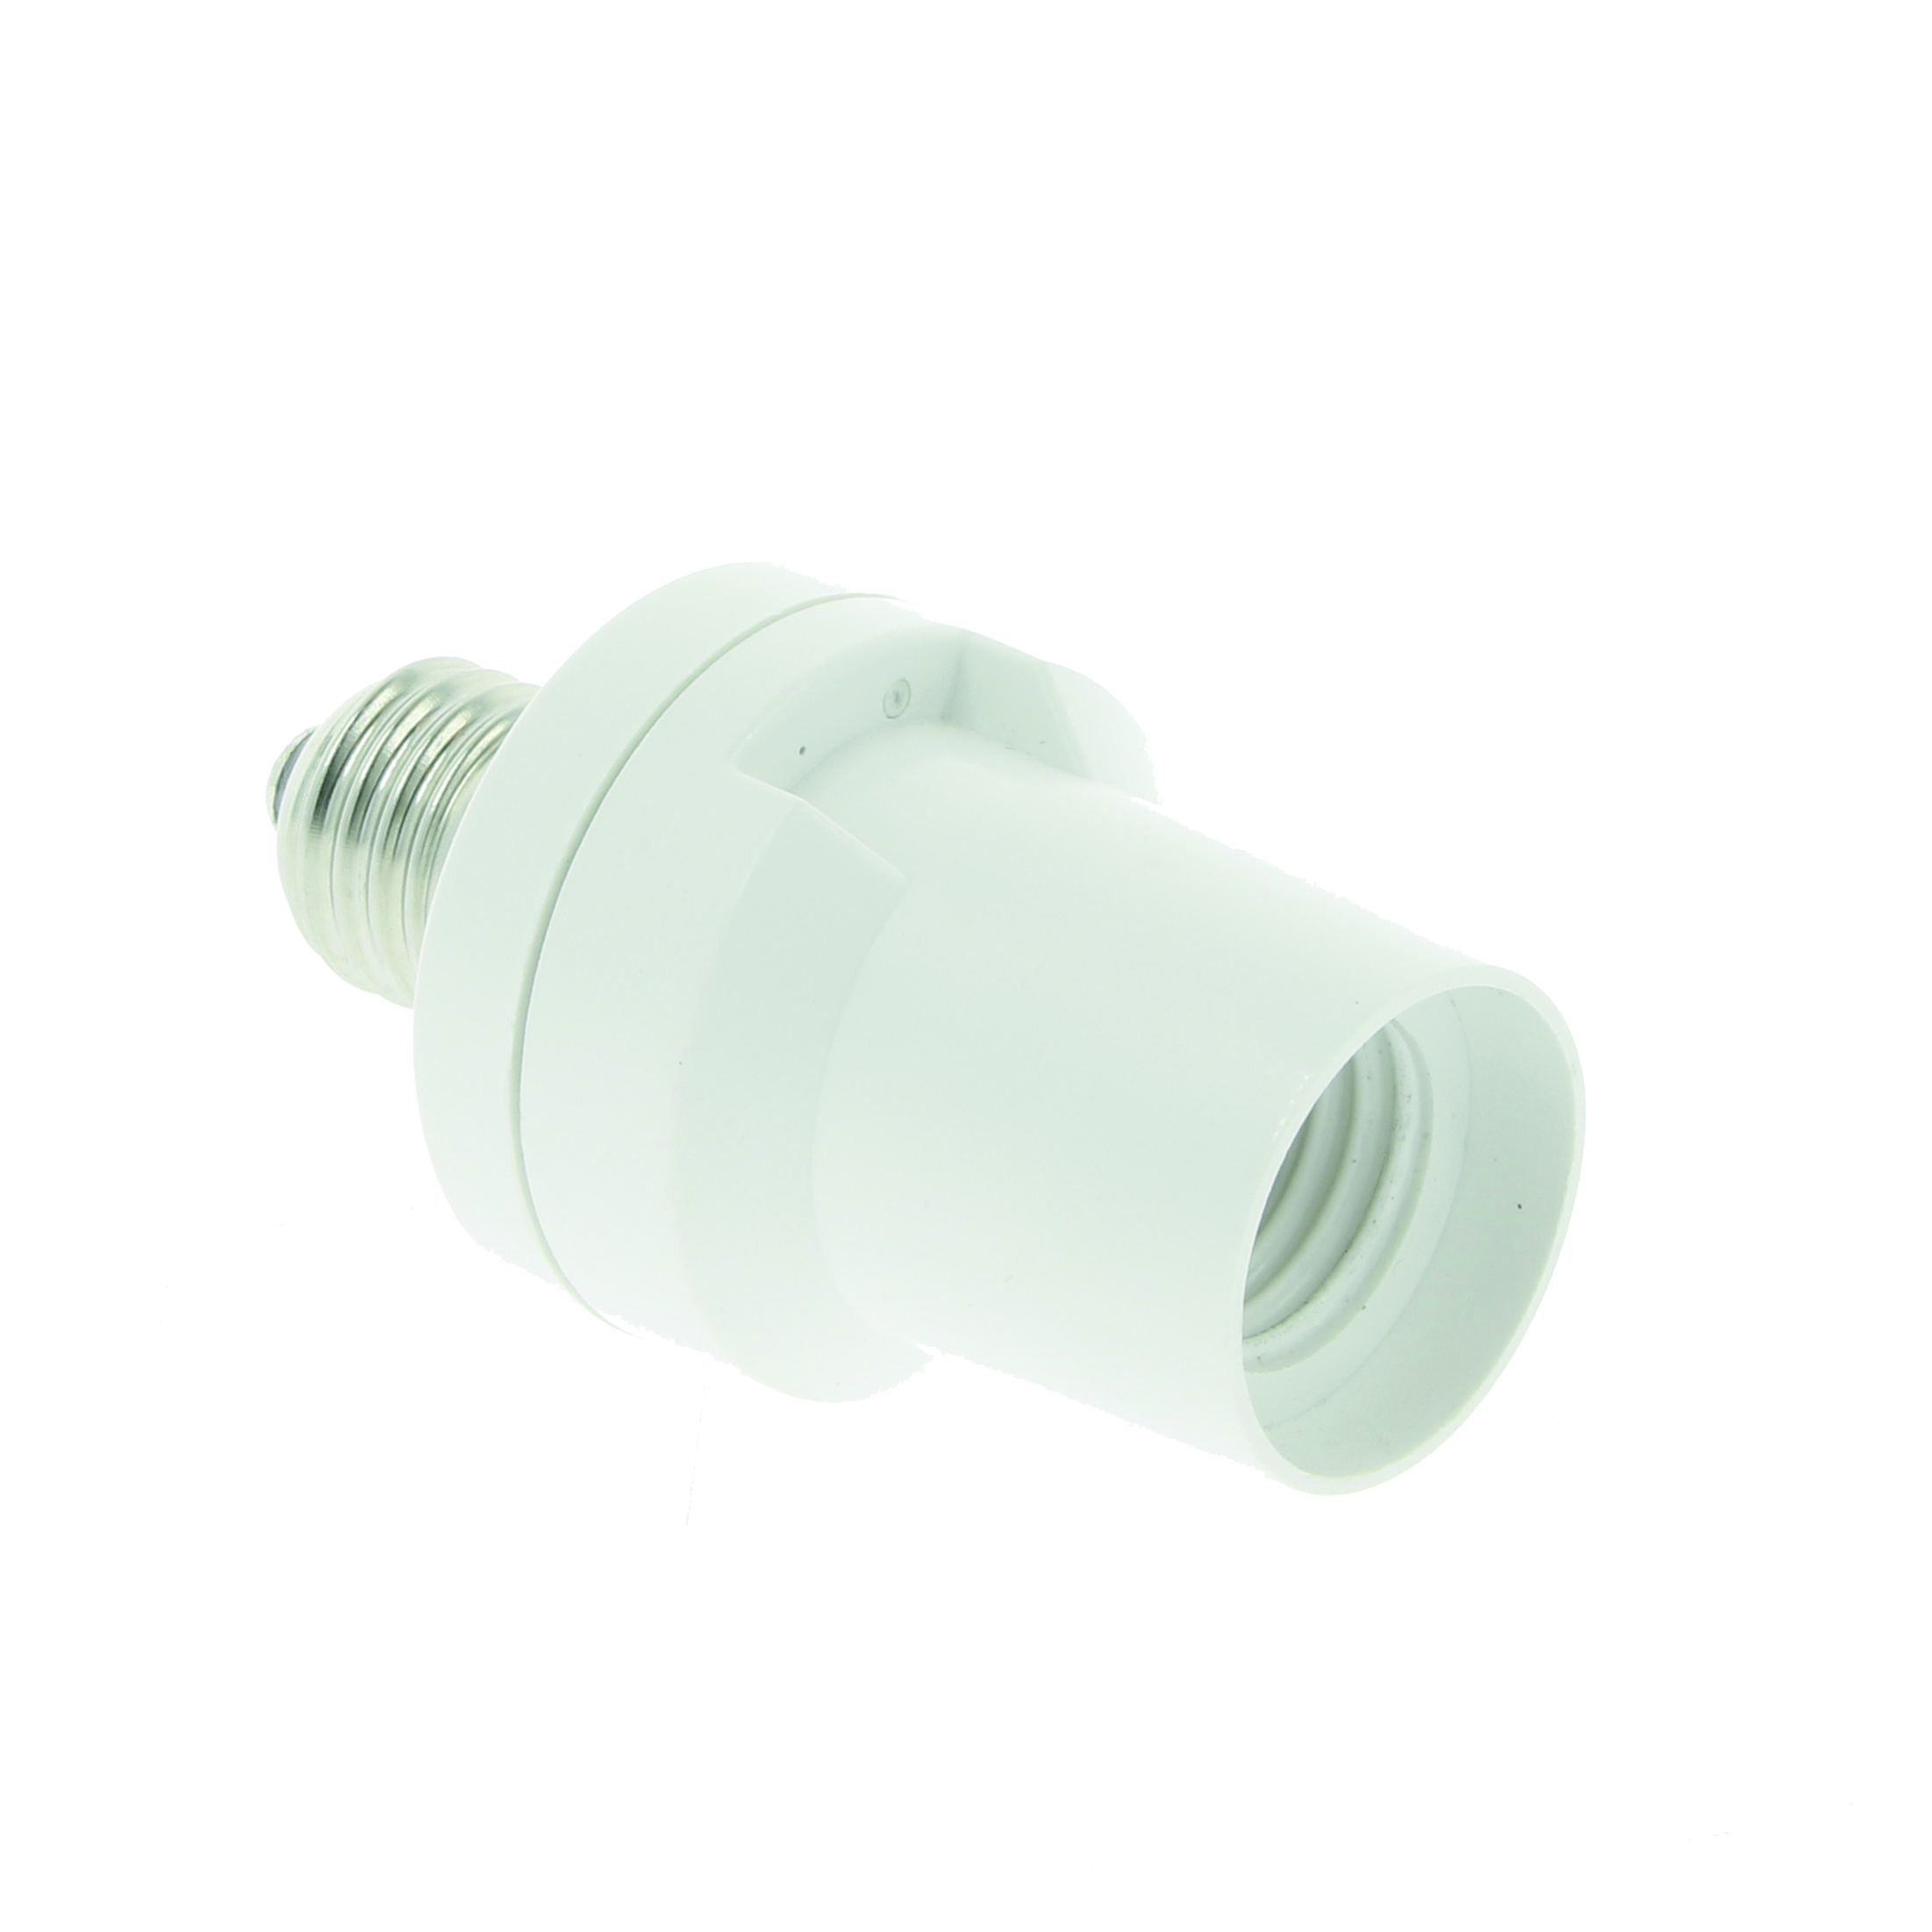 Wireless fitting E27 dimmable 60W